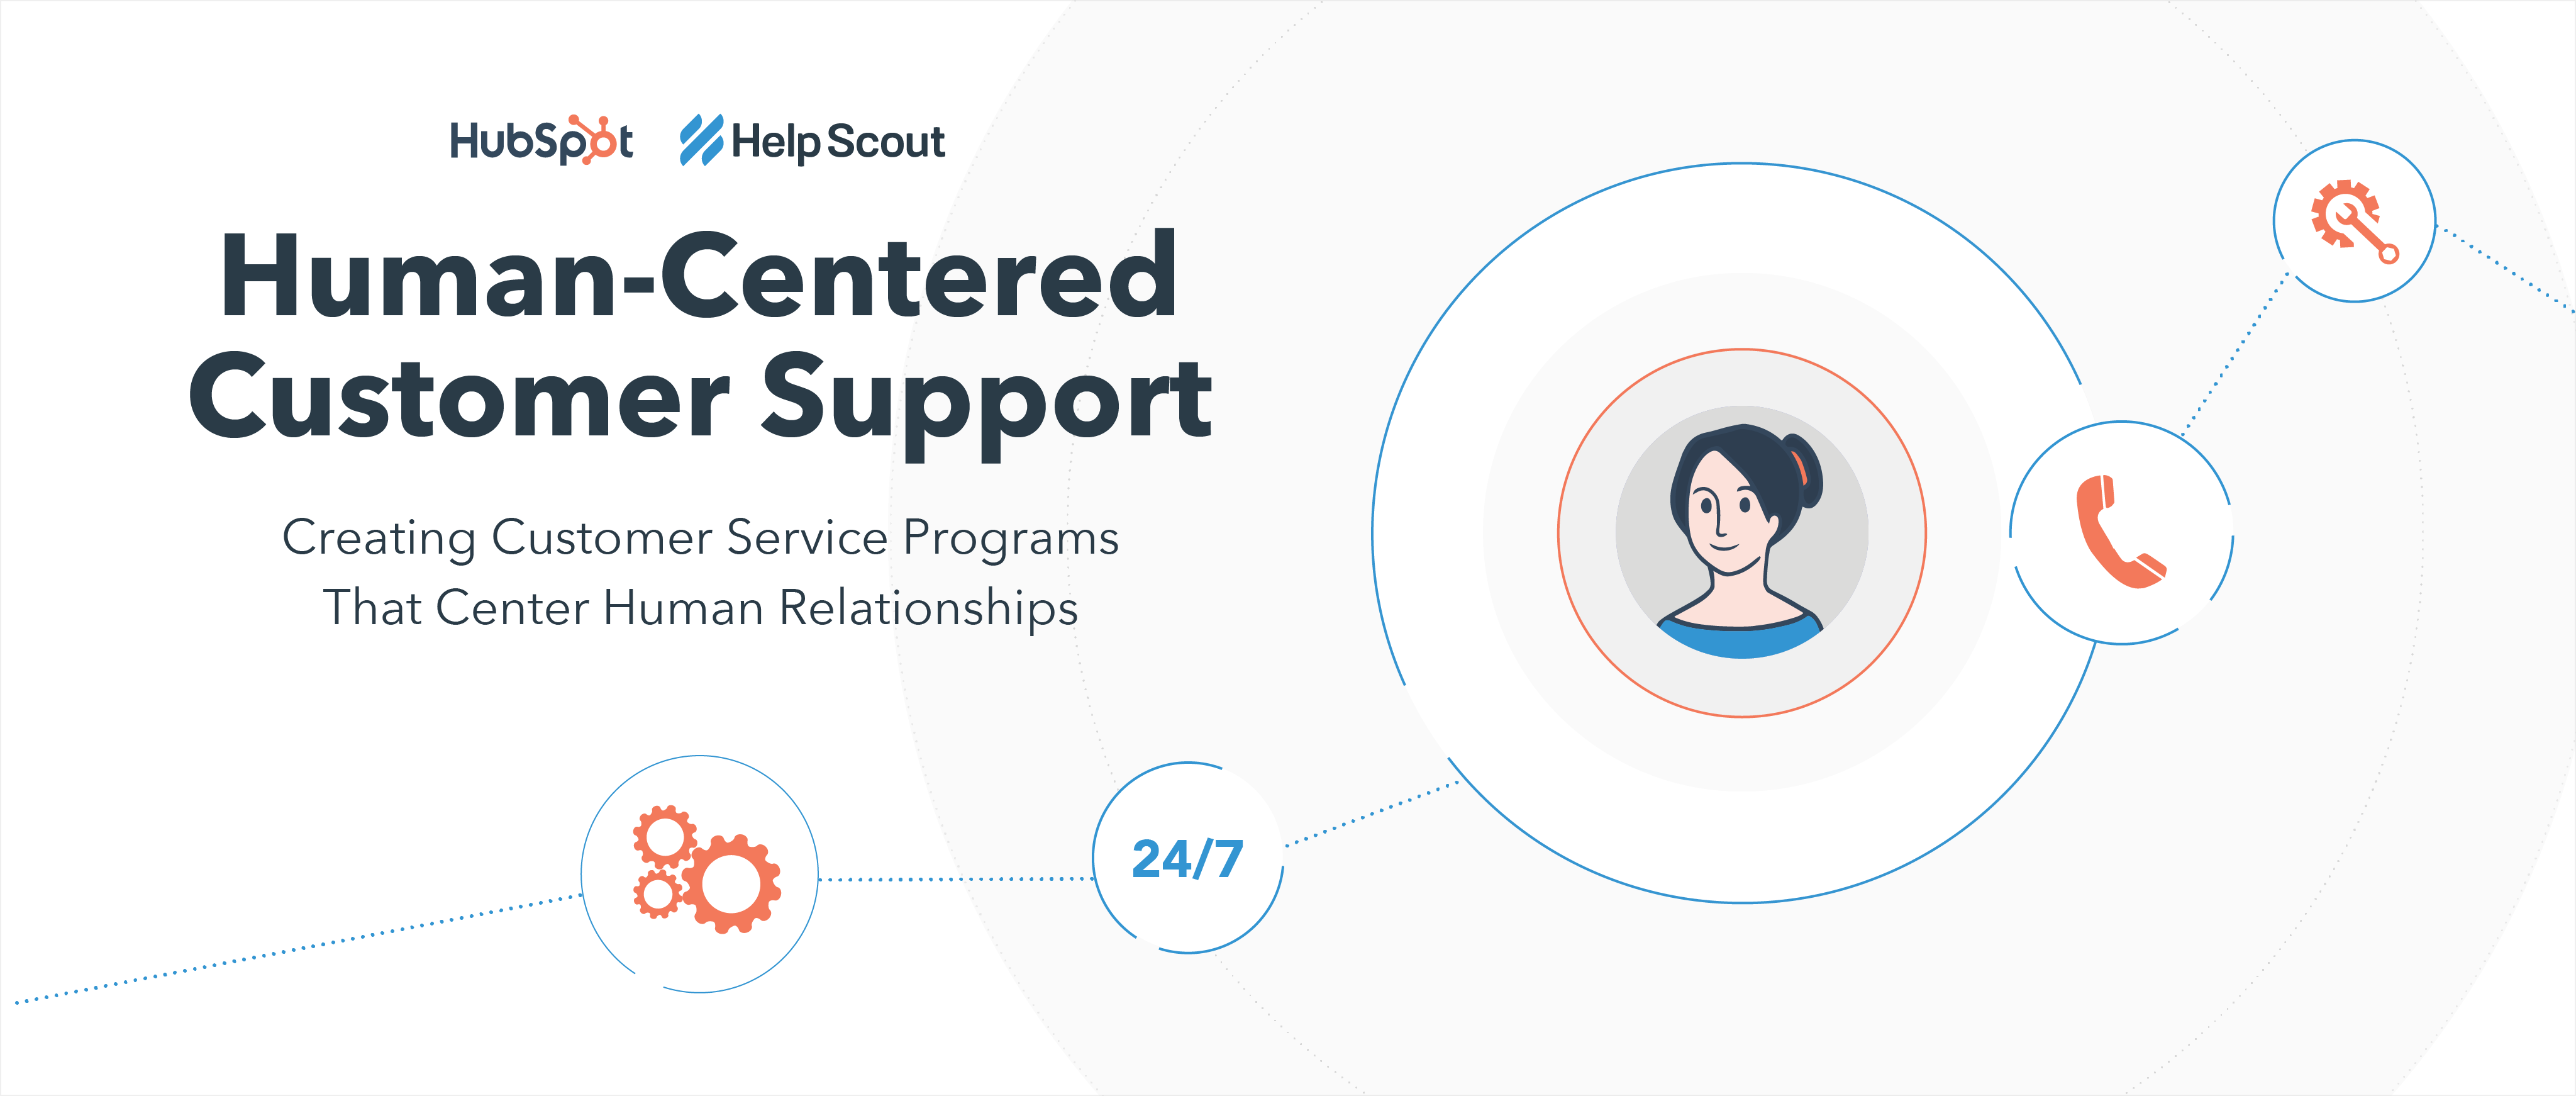 Human-Centered Customer Support